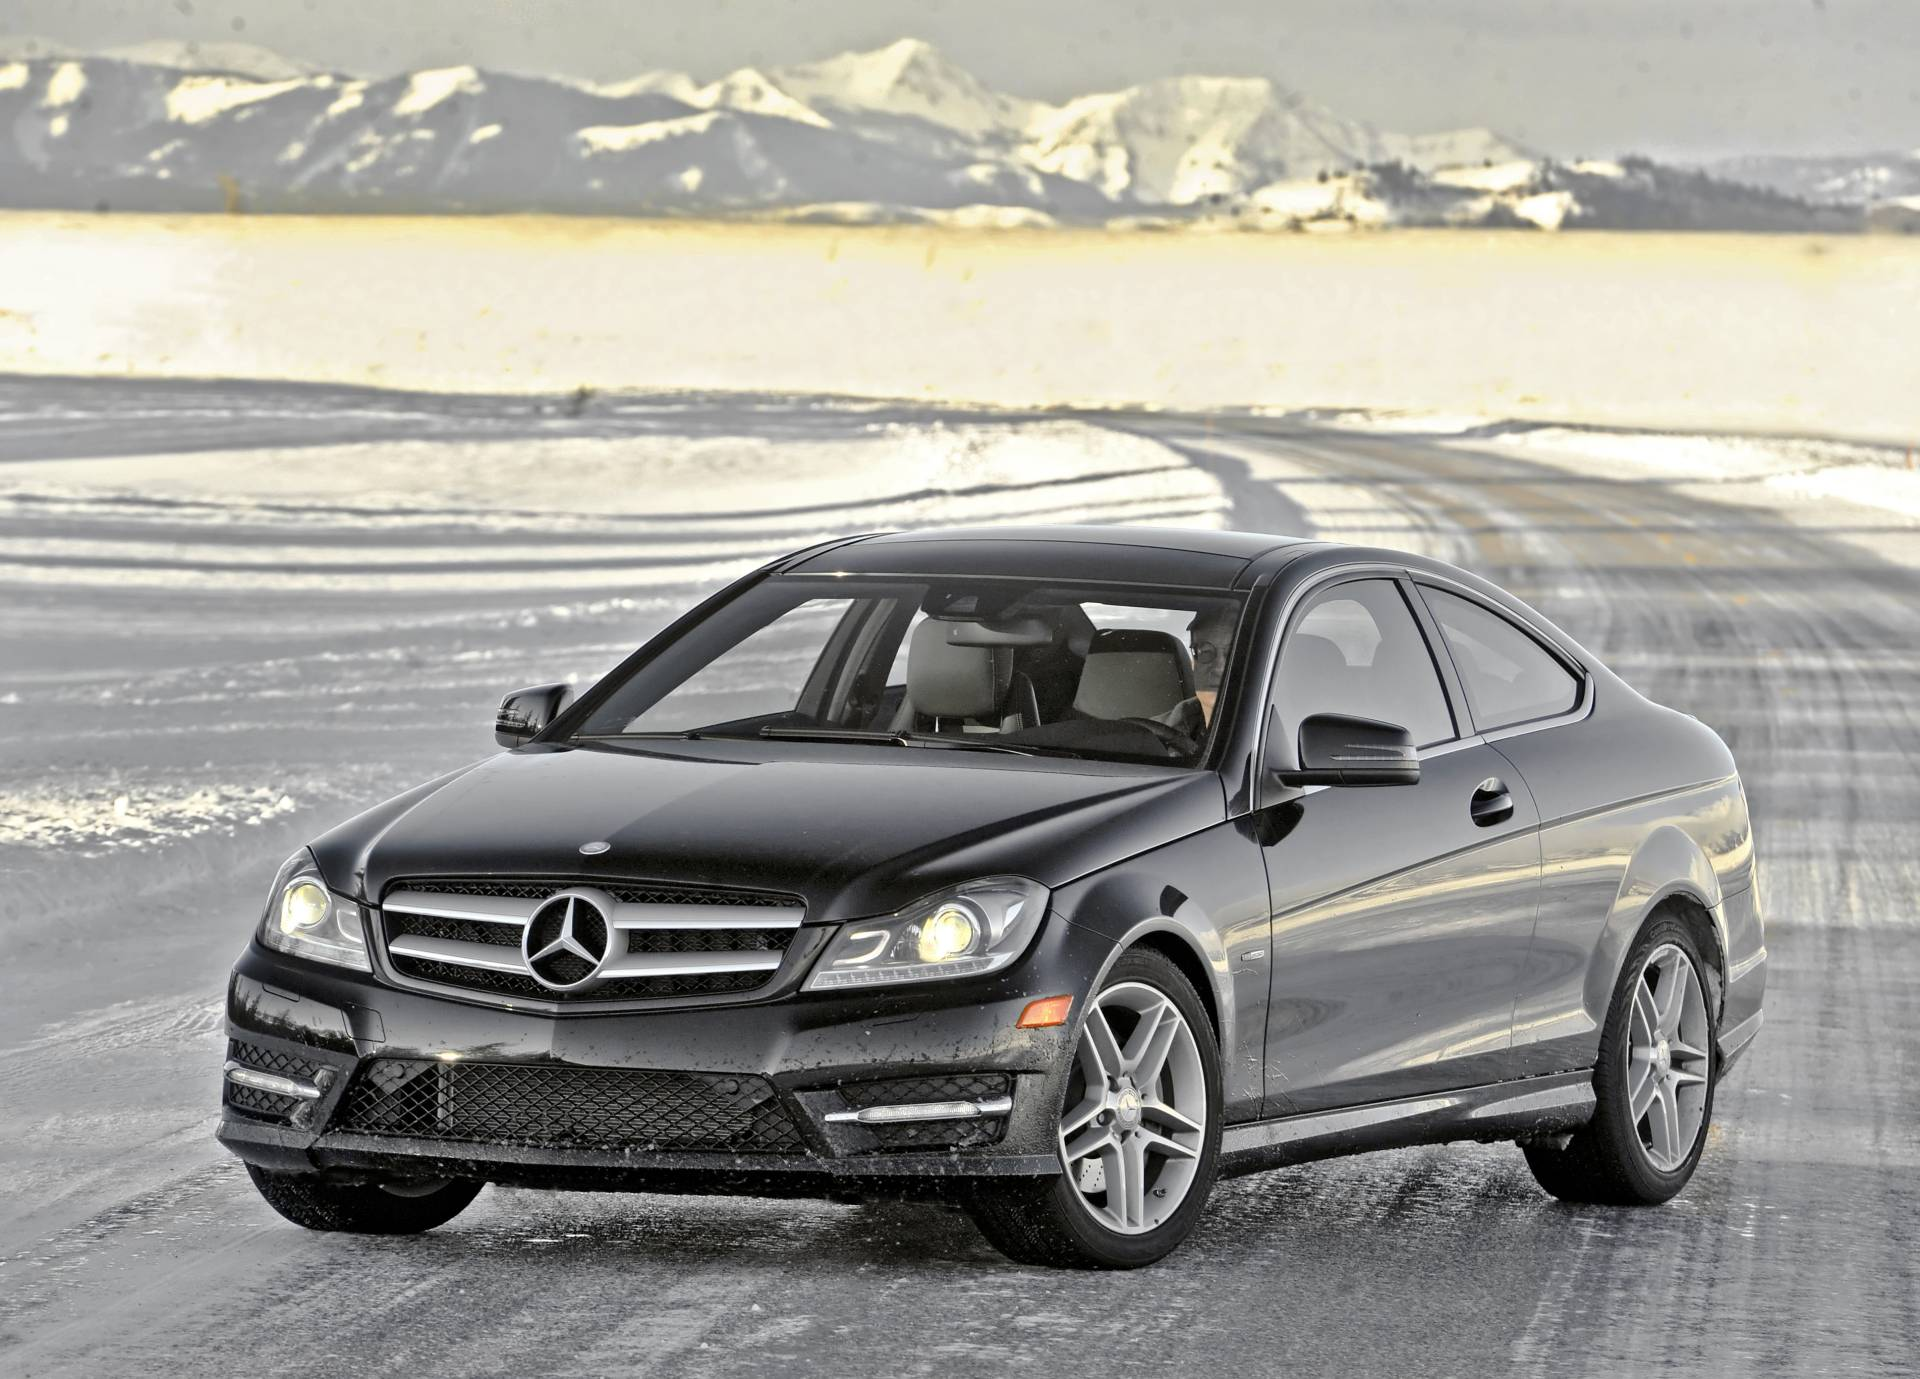 2013 mercedes benz c class news and information for Mercedes benz schedule a